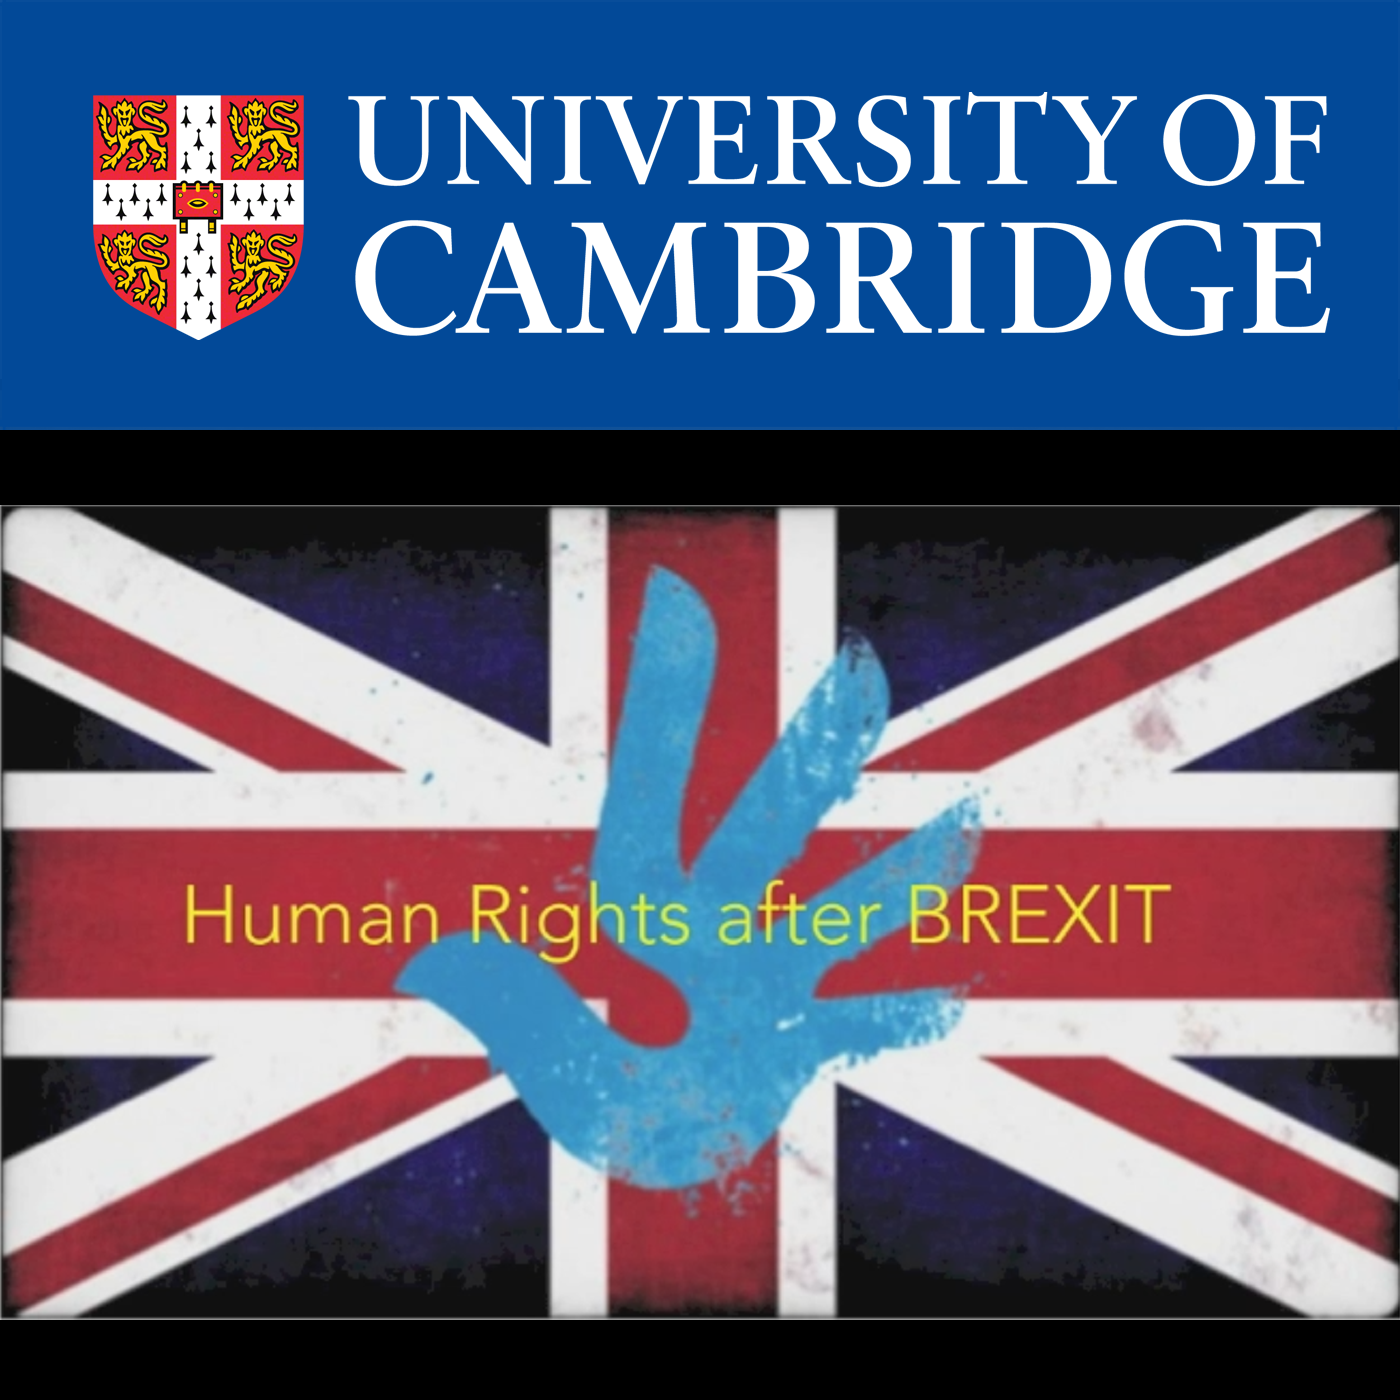 Human Rights After Brexit Workshop's image